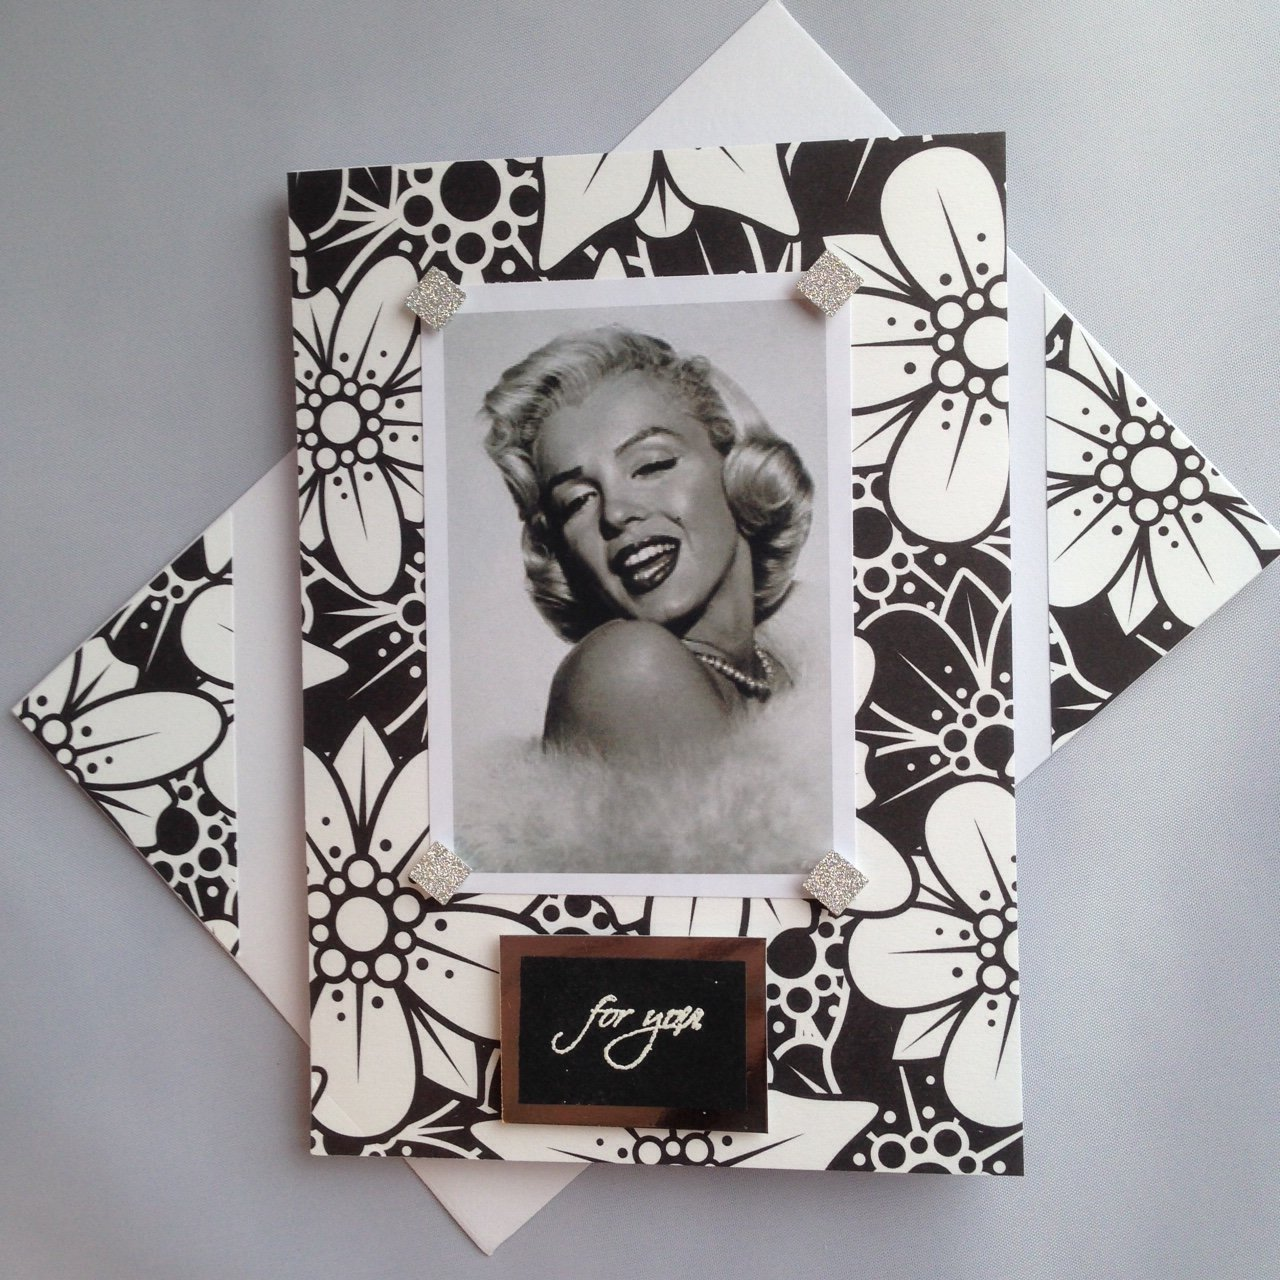 MARILYN MONROE Birthday valentines For you greetings card Black white Handmade Celebrations Thanksgiving Singer actress A6//C6 size